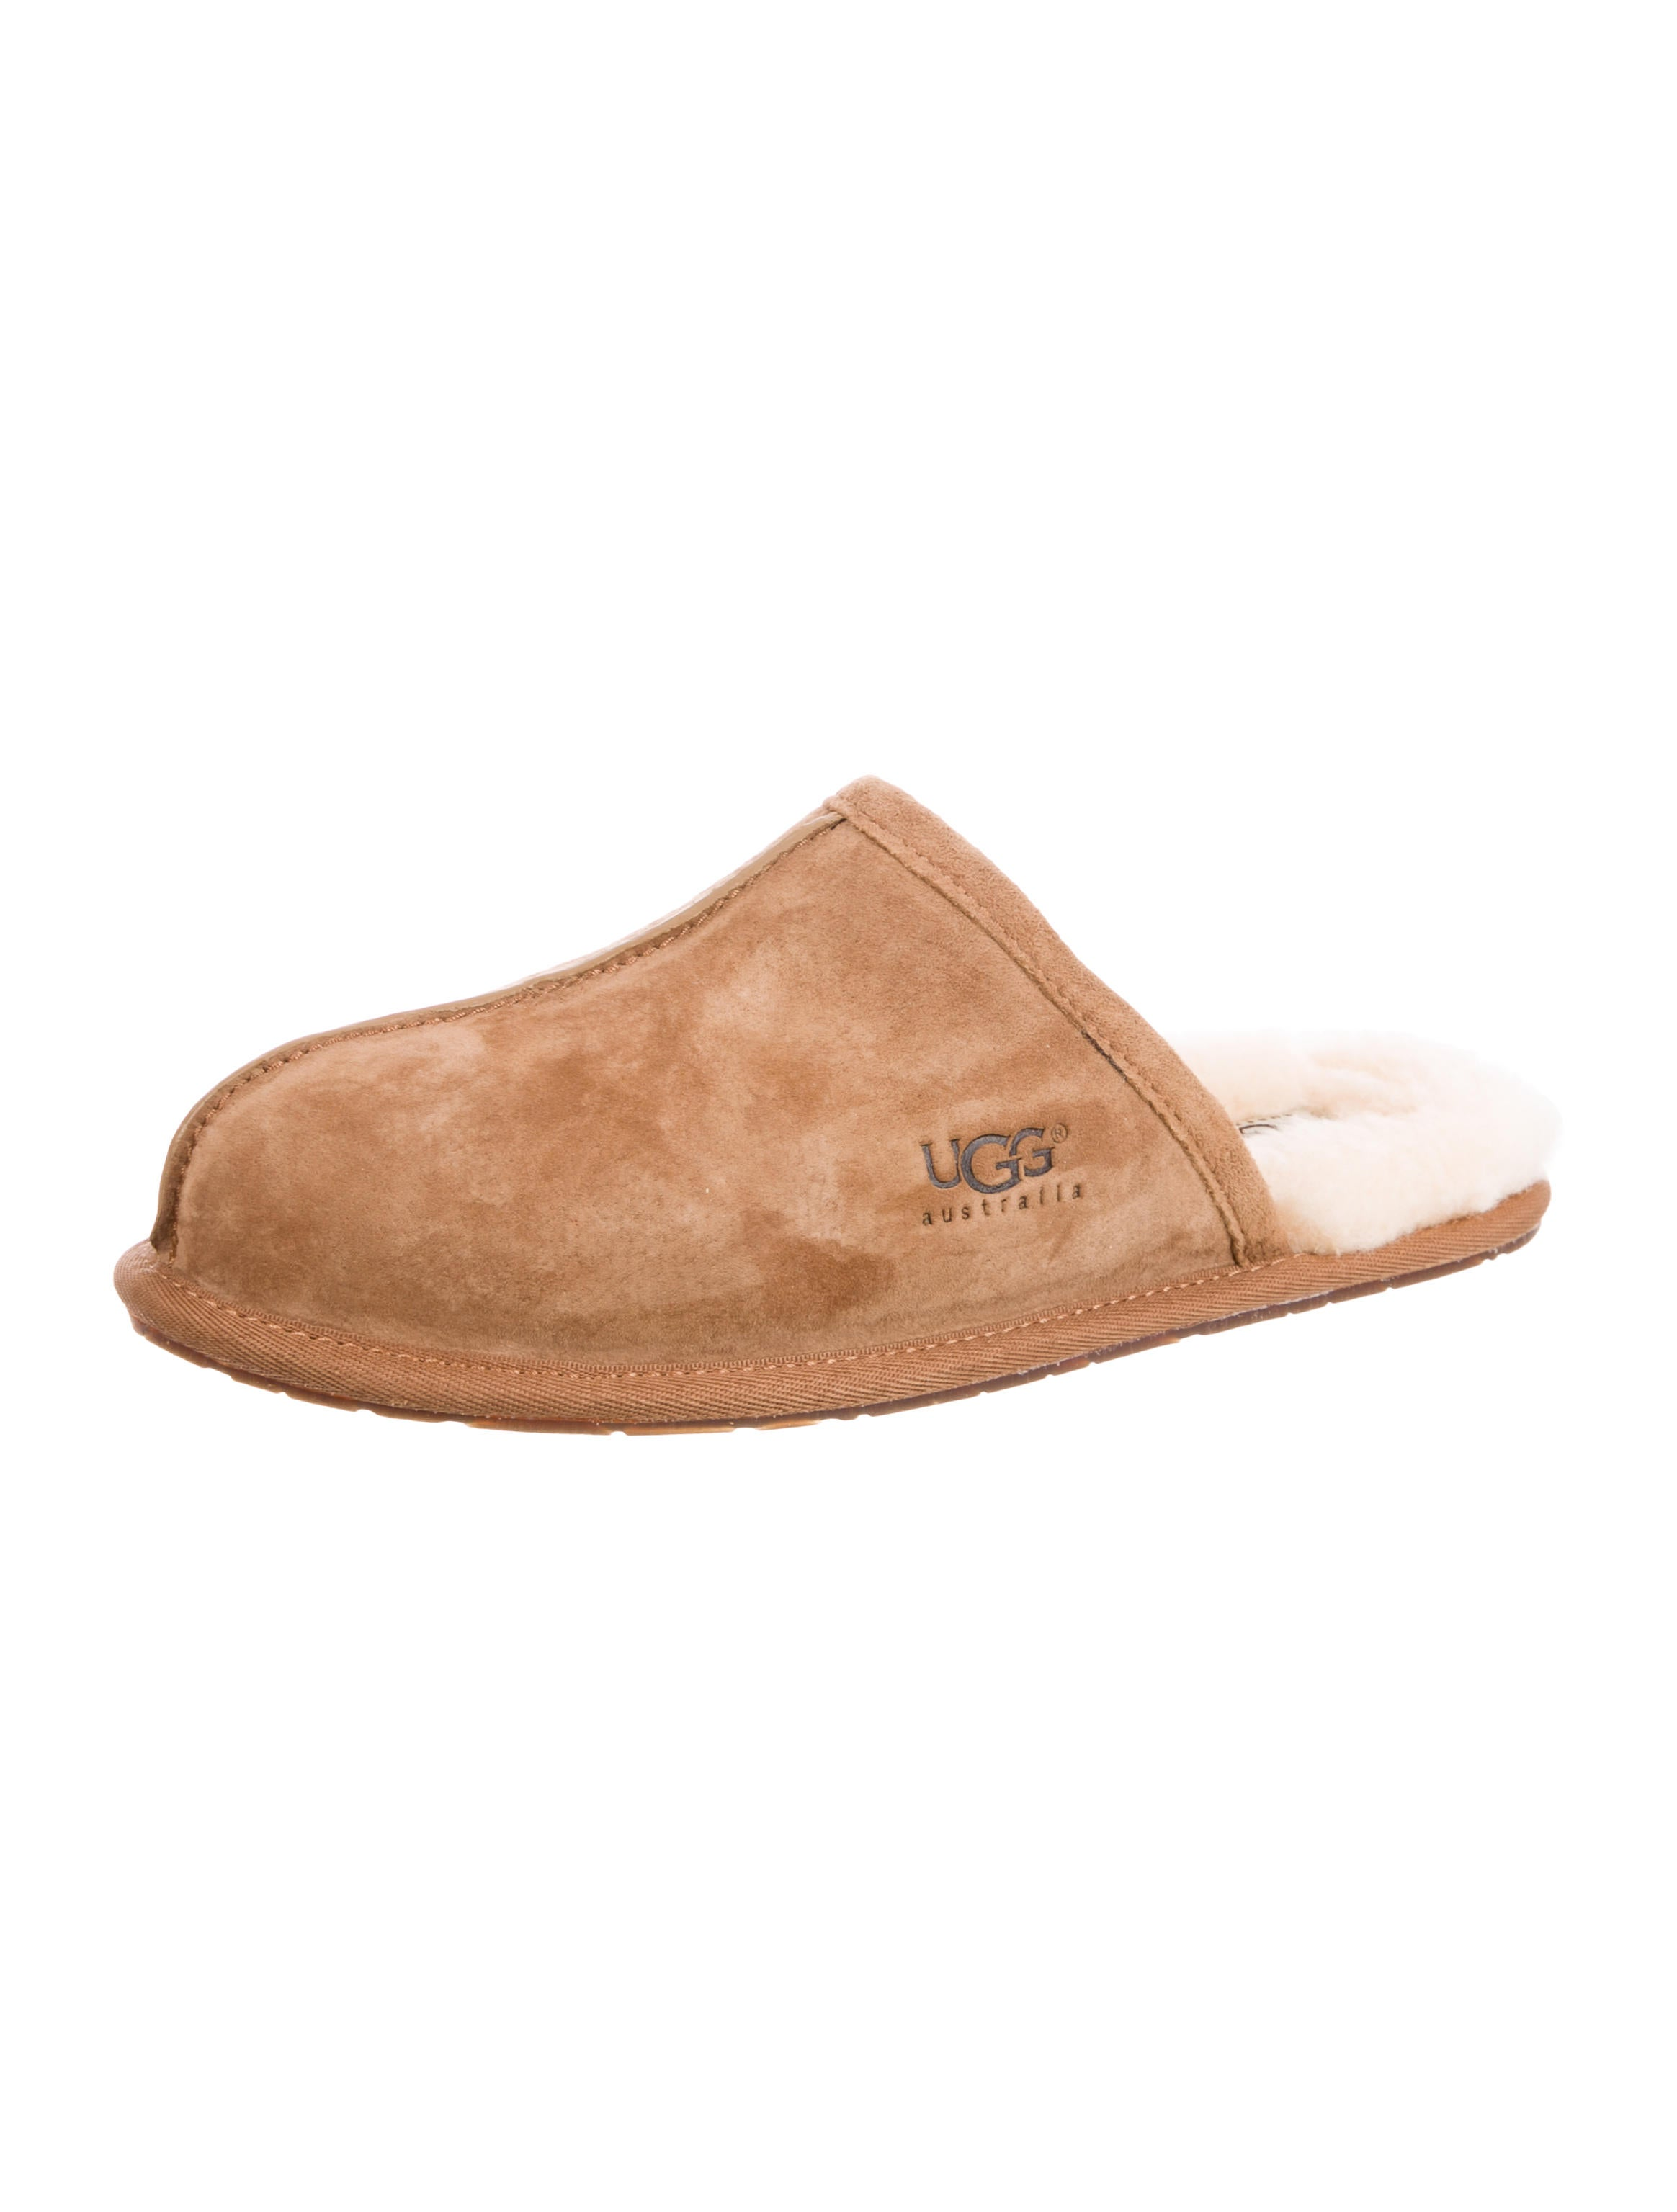 UGG Australia Pearle Suede Mules w/ Tags cheap best place 4bsse